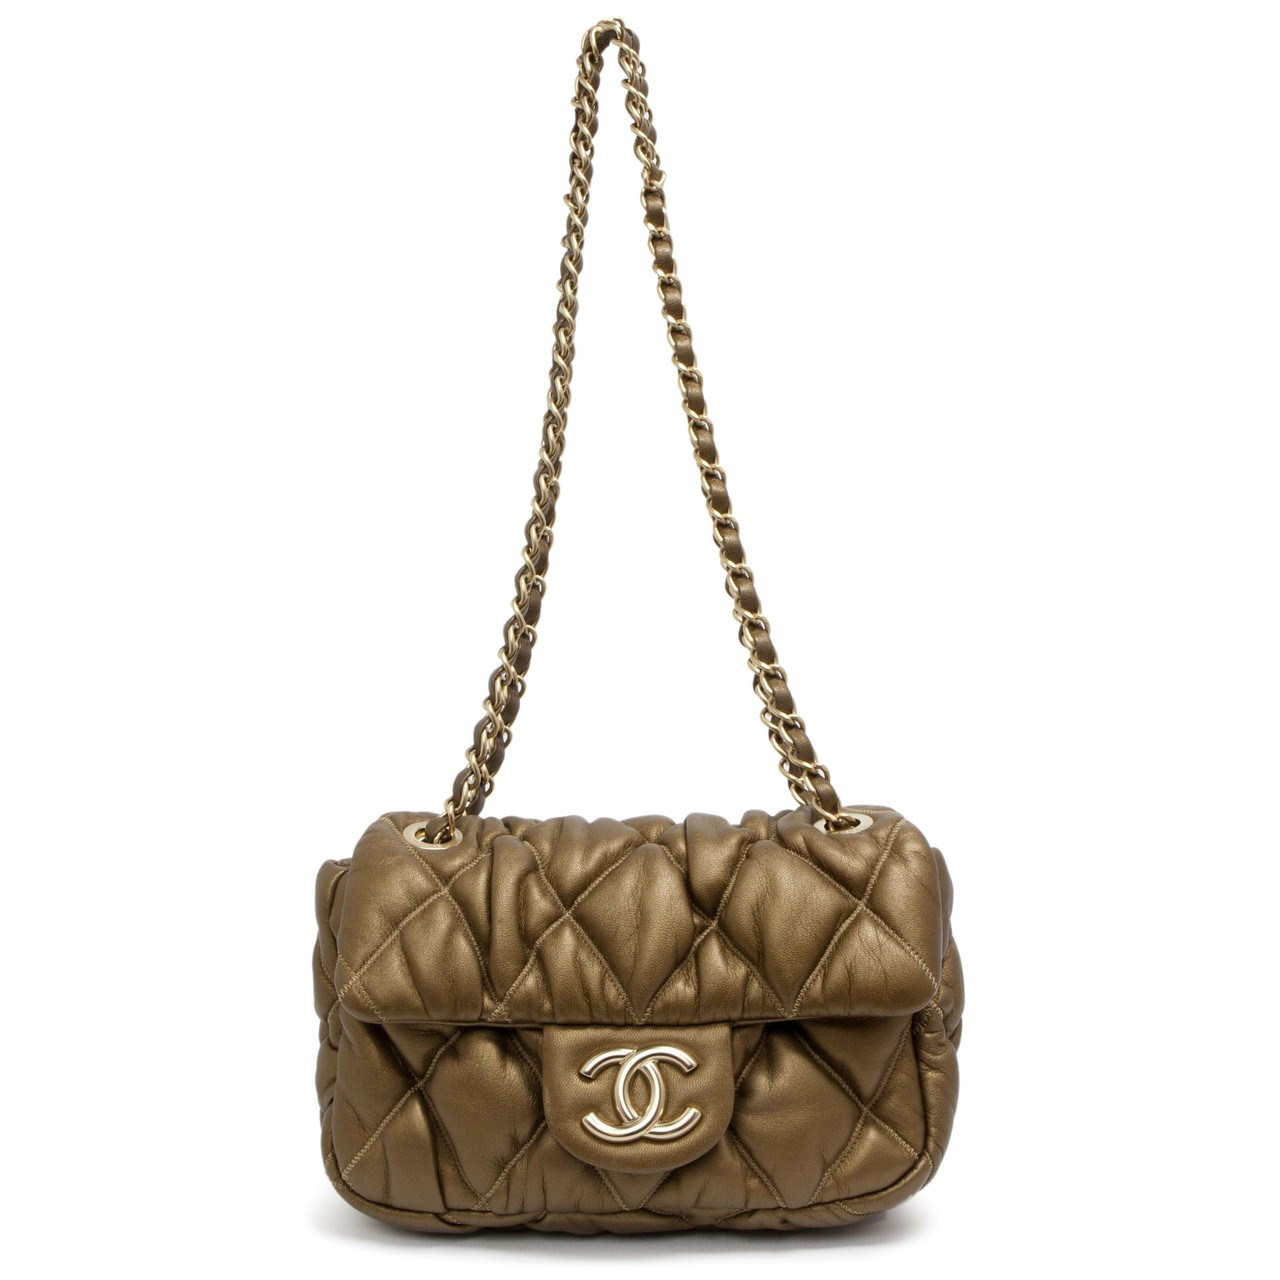 0c2482a73486 Chanel Metallic Bronze Bubble Quilted Flap - modaselle